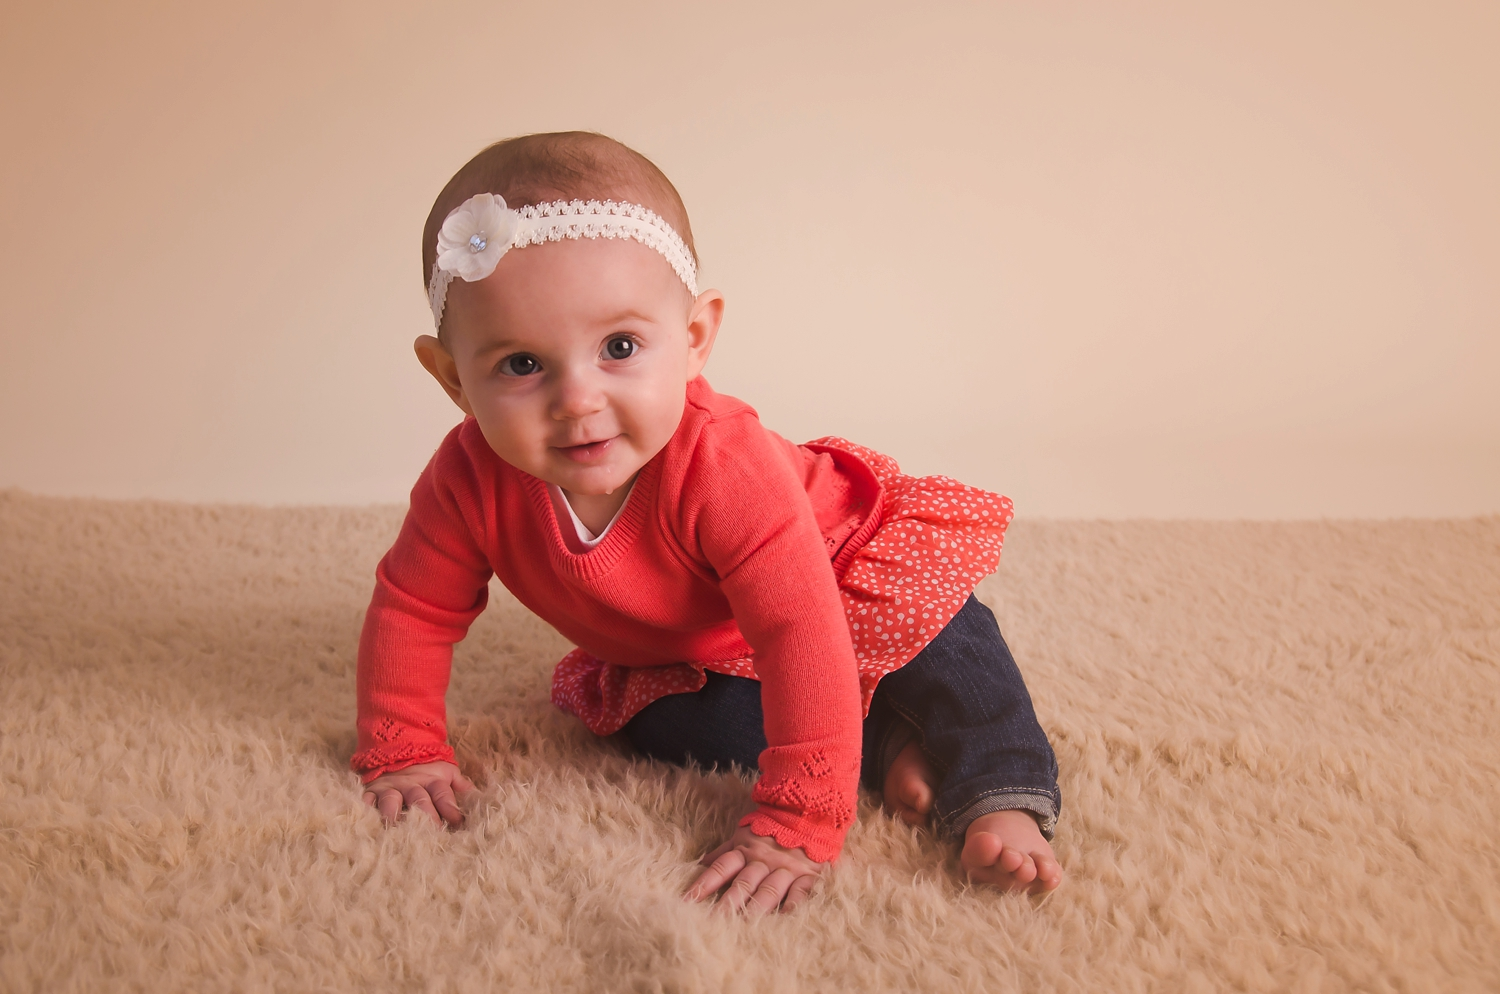 indianapolis-6-months-baby-photos_0002.jpg